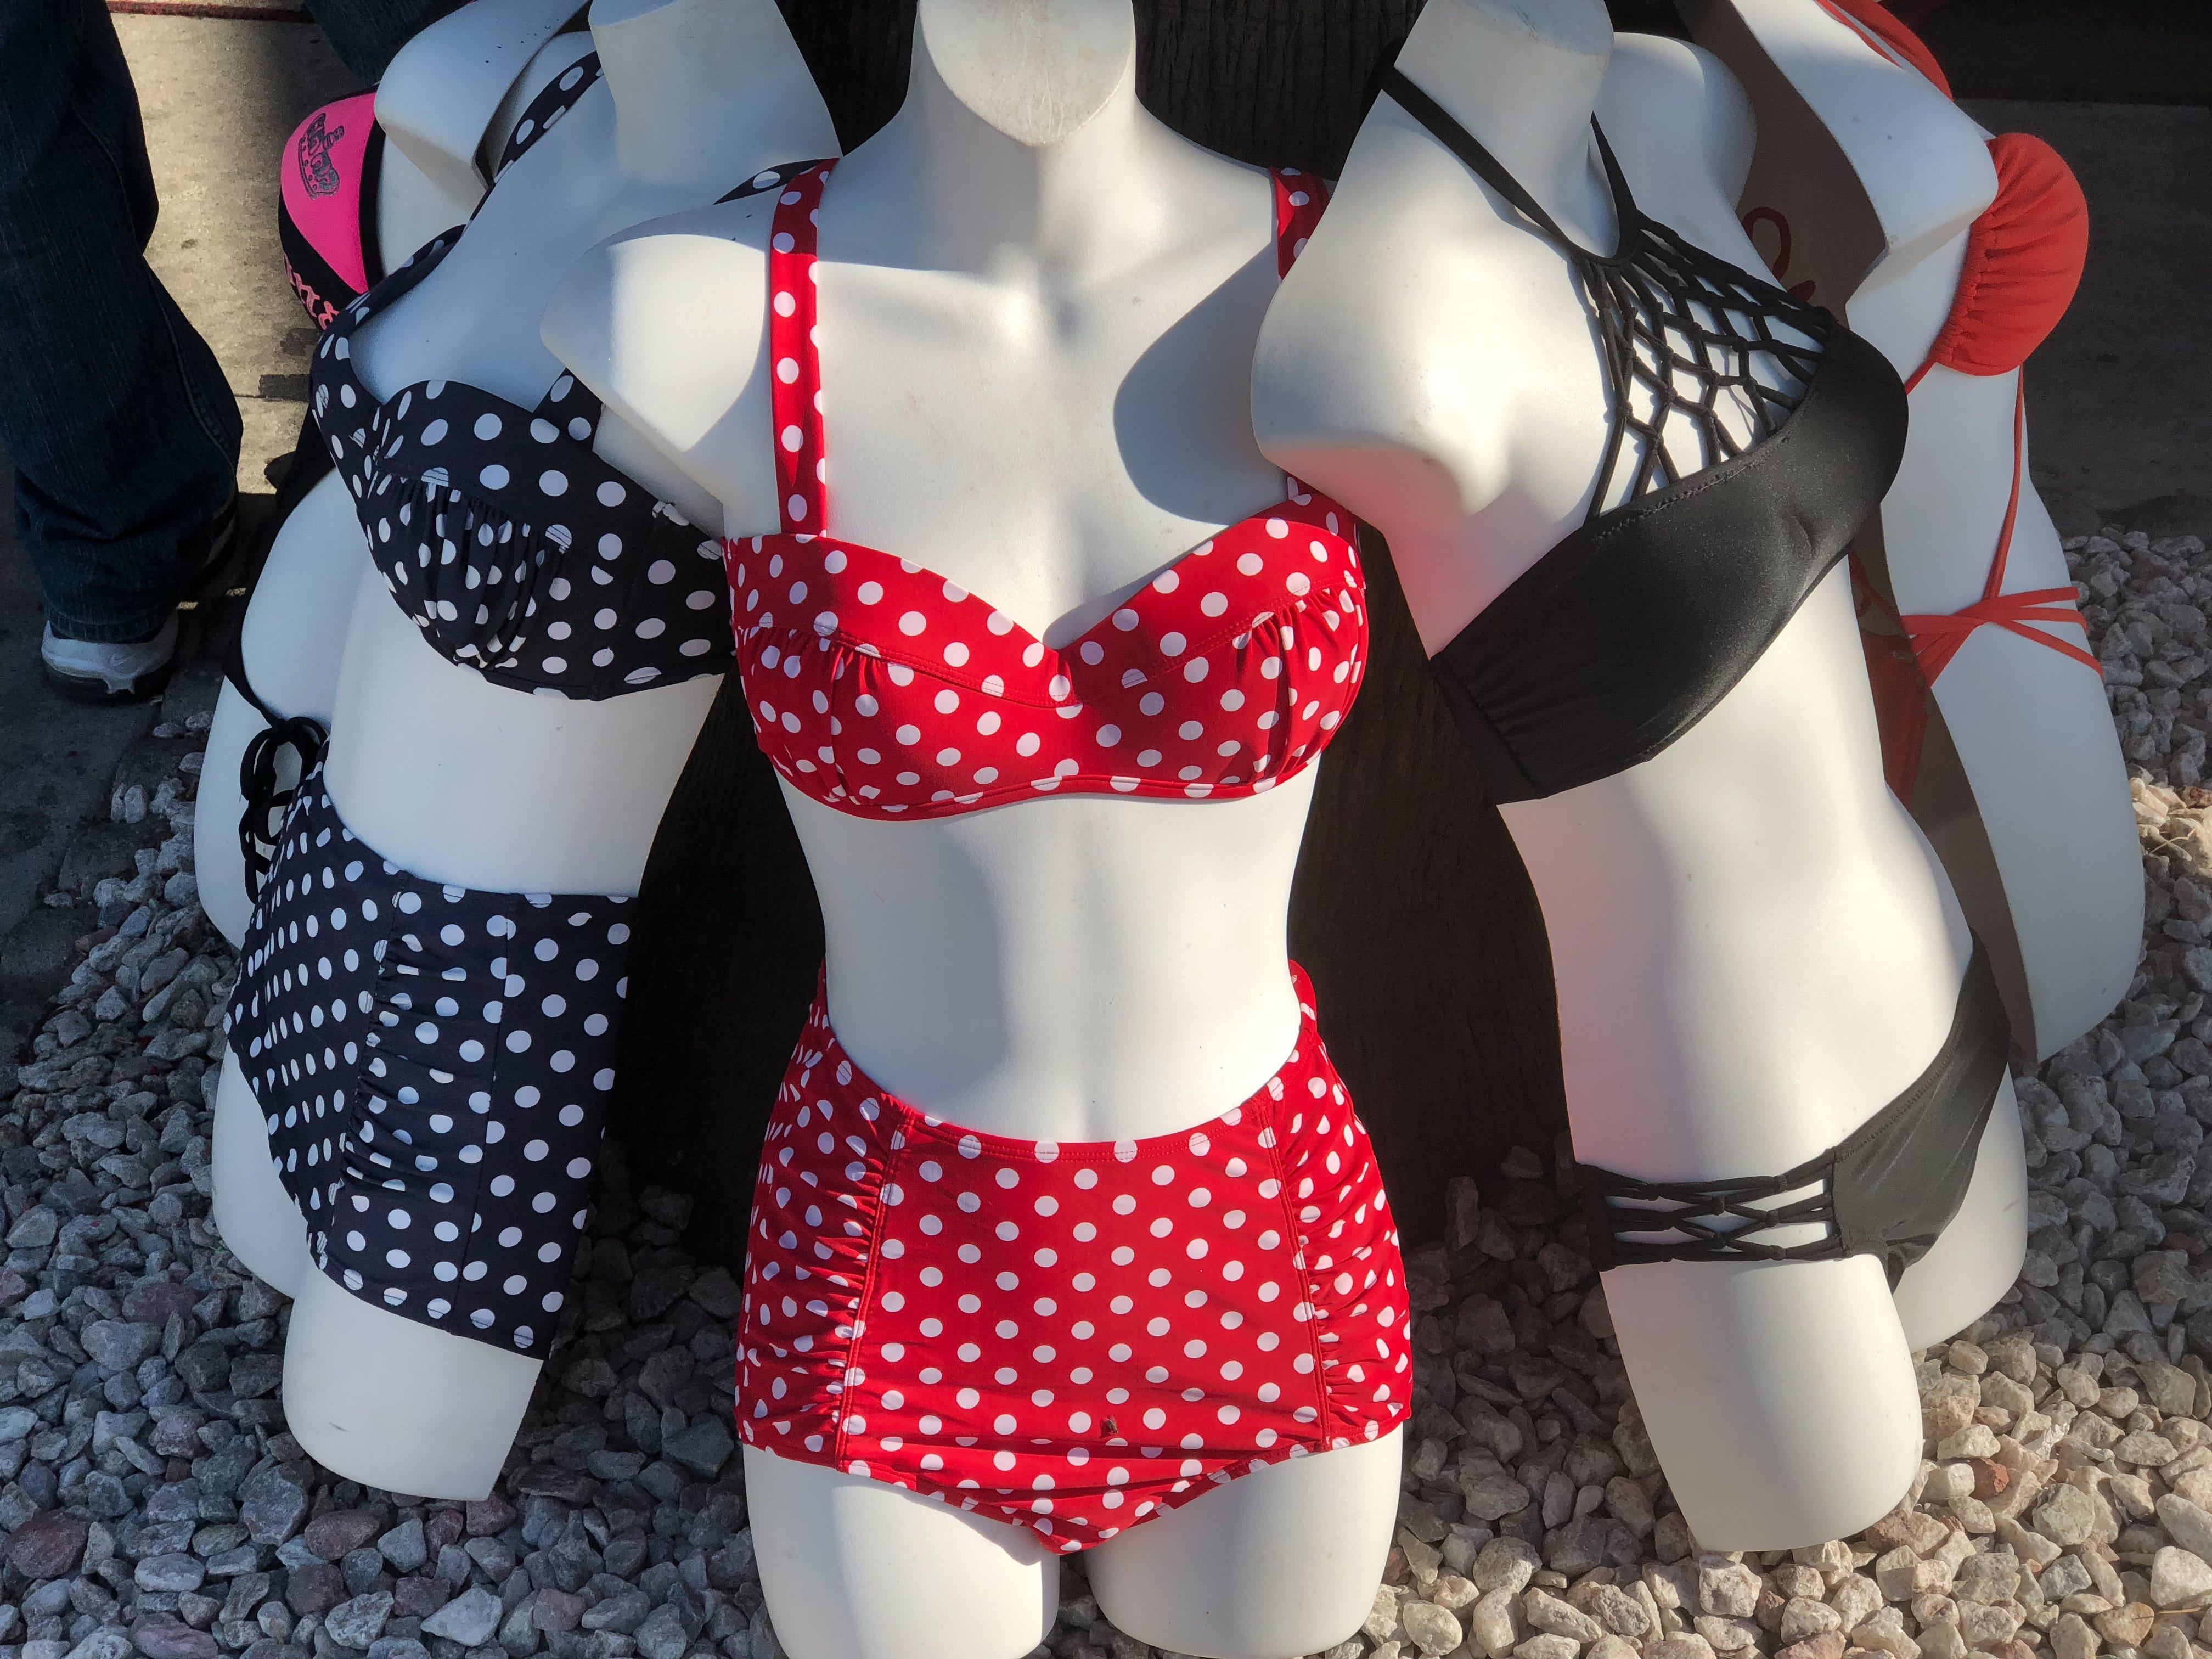 Bikinis for sale.